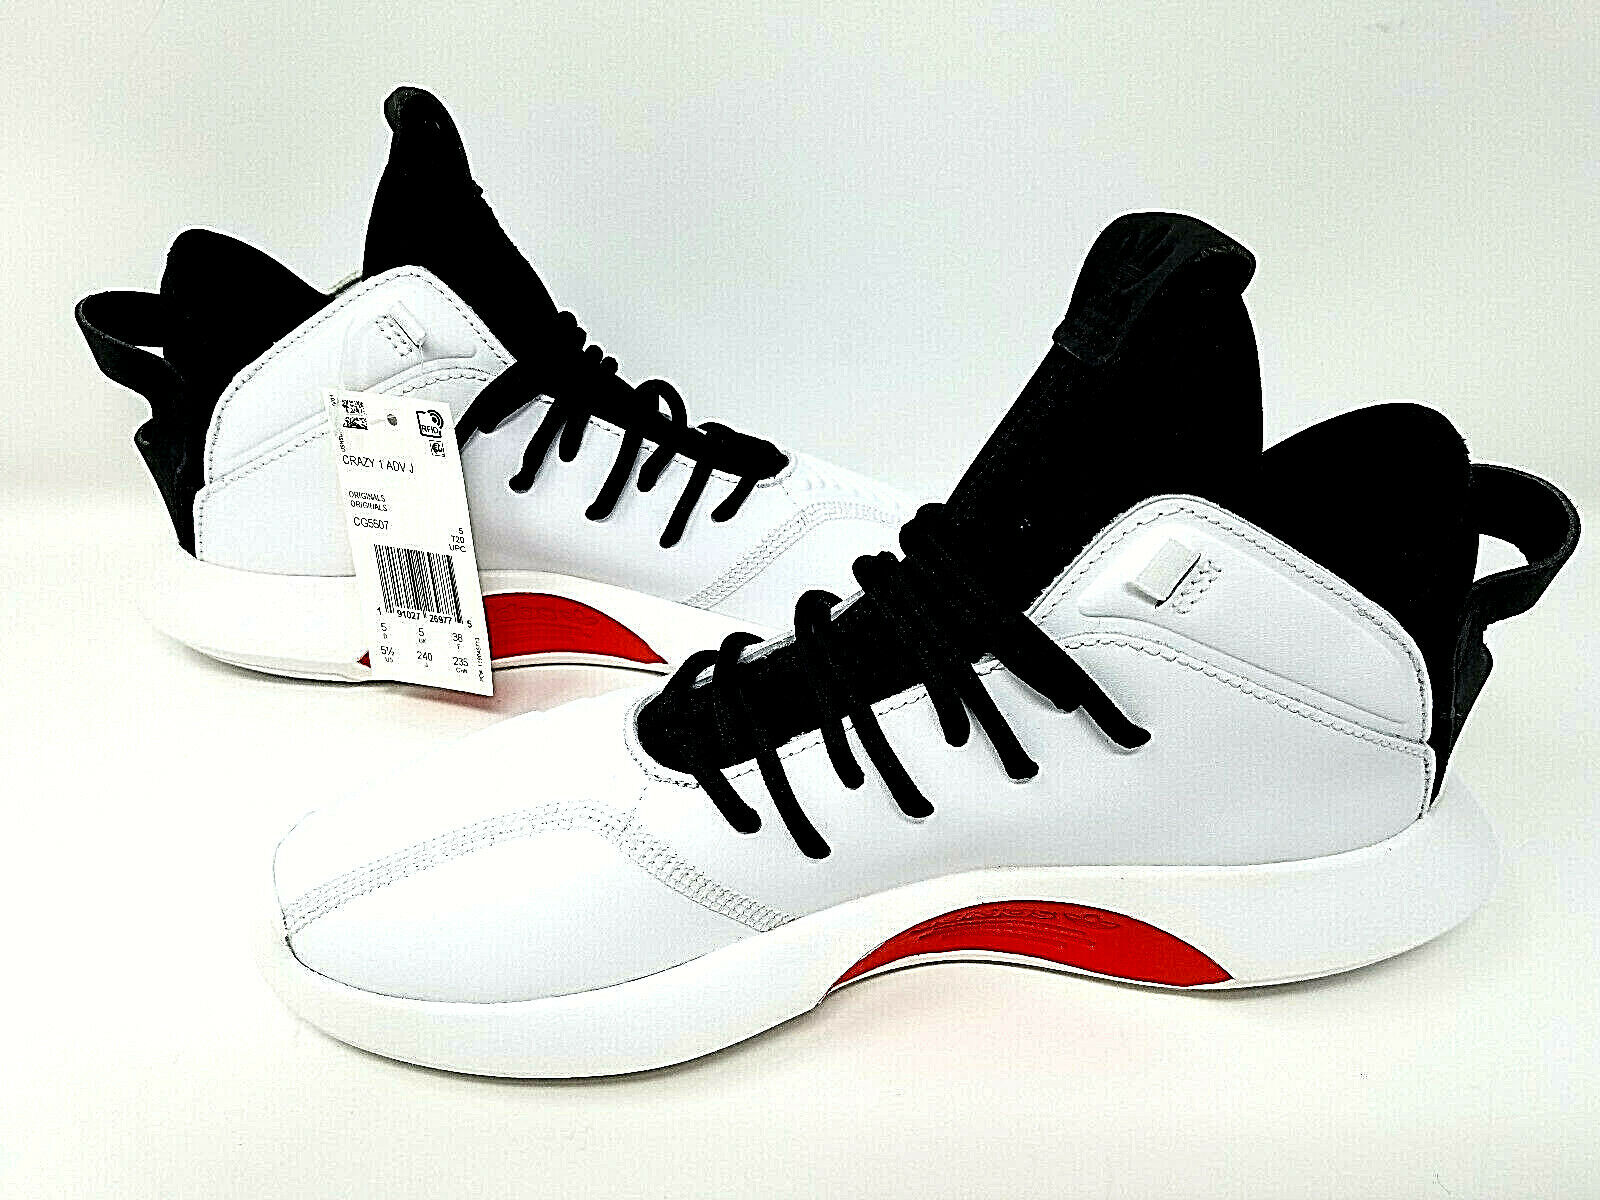 NEW adidas Crazy 1 ADV J White Black Red Basketball shoes - Originals